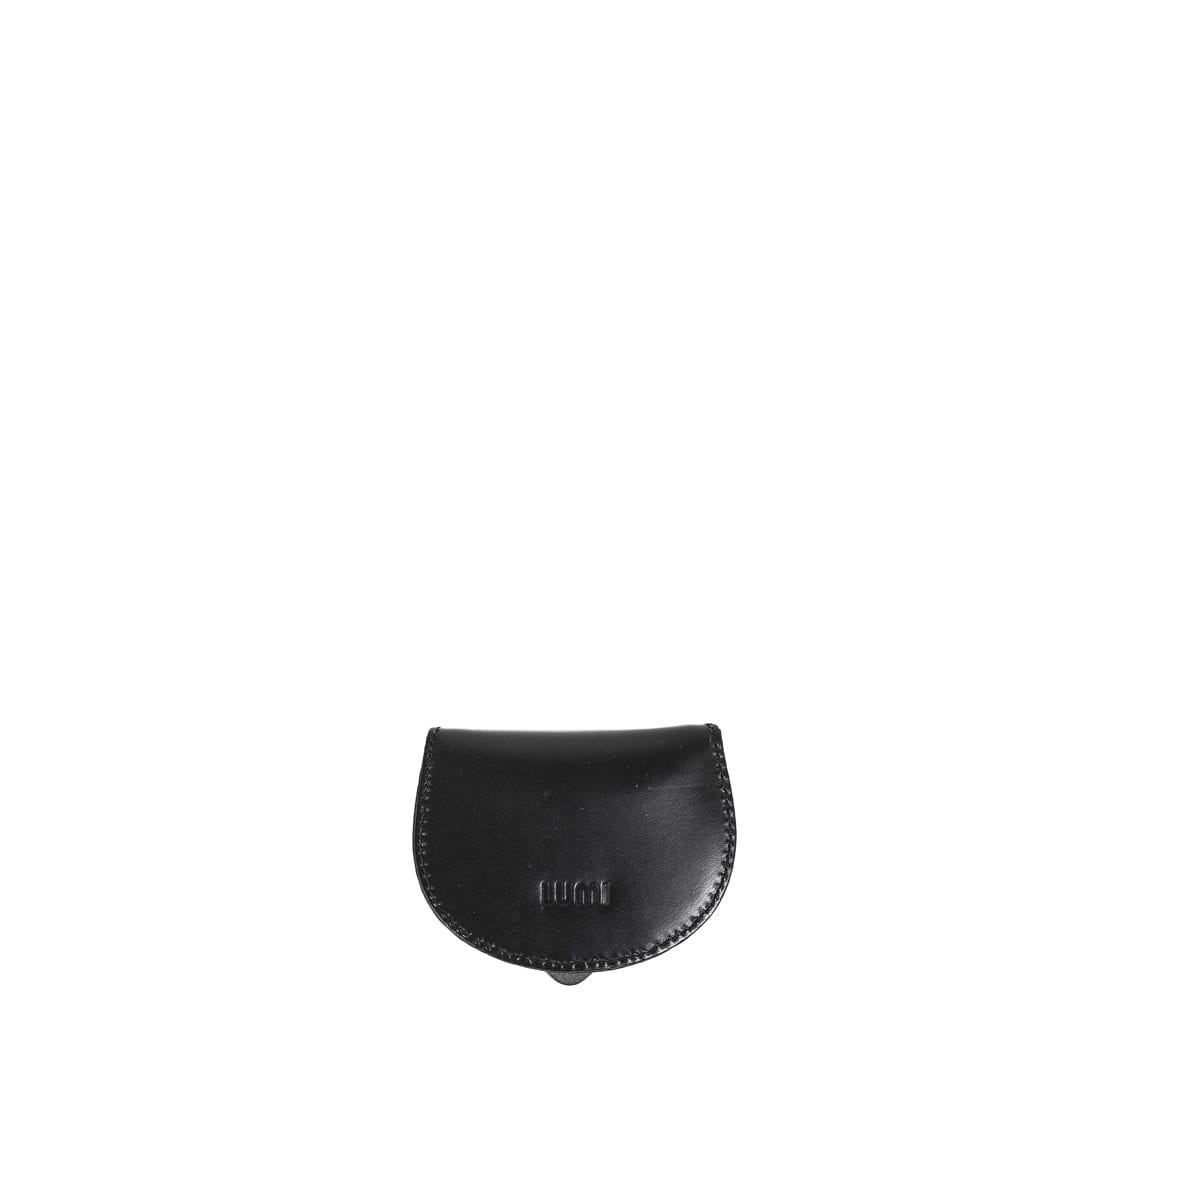 LUMI Big Coin Pouch, in black, is created using natural vegetable tanned cow leather.